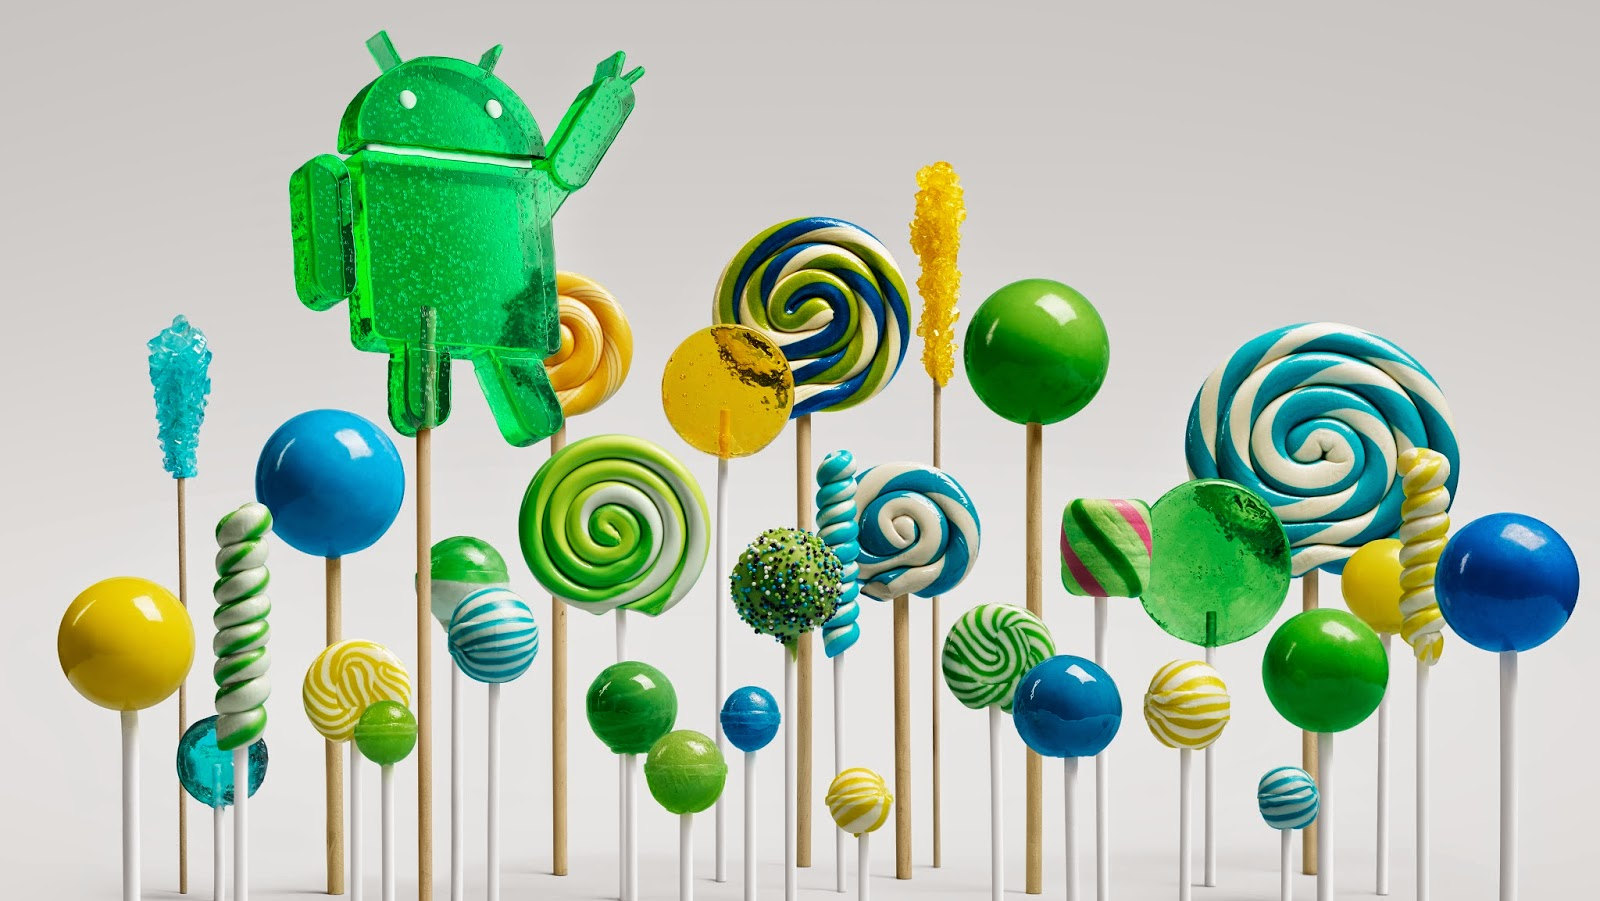 Android 5.0.2 OS update